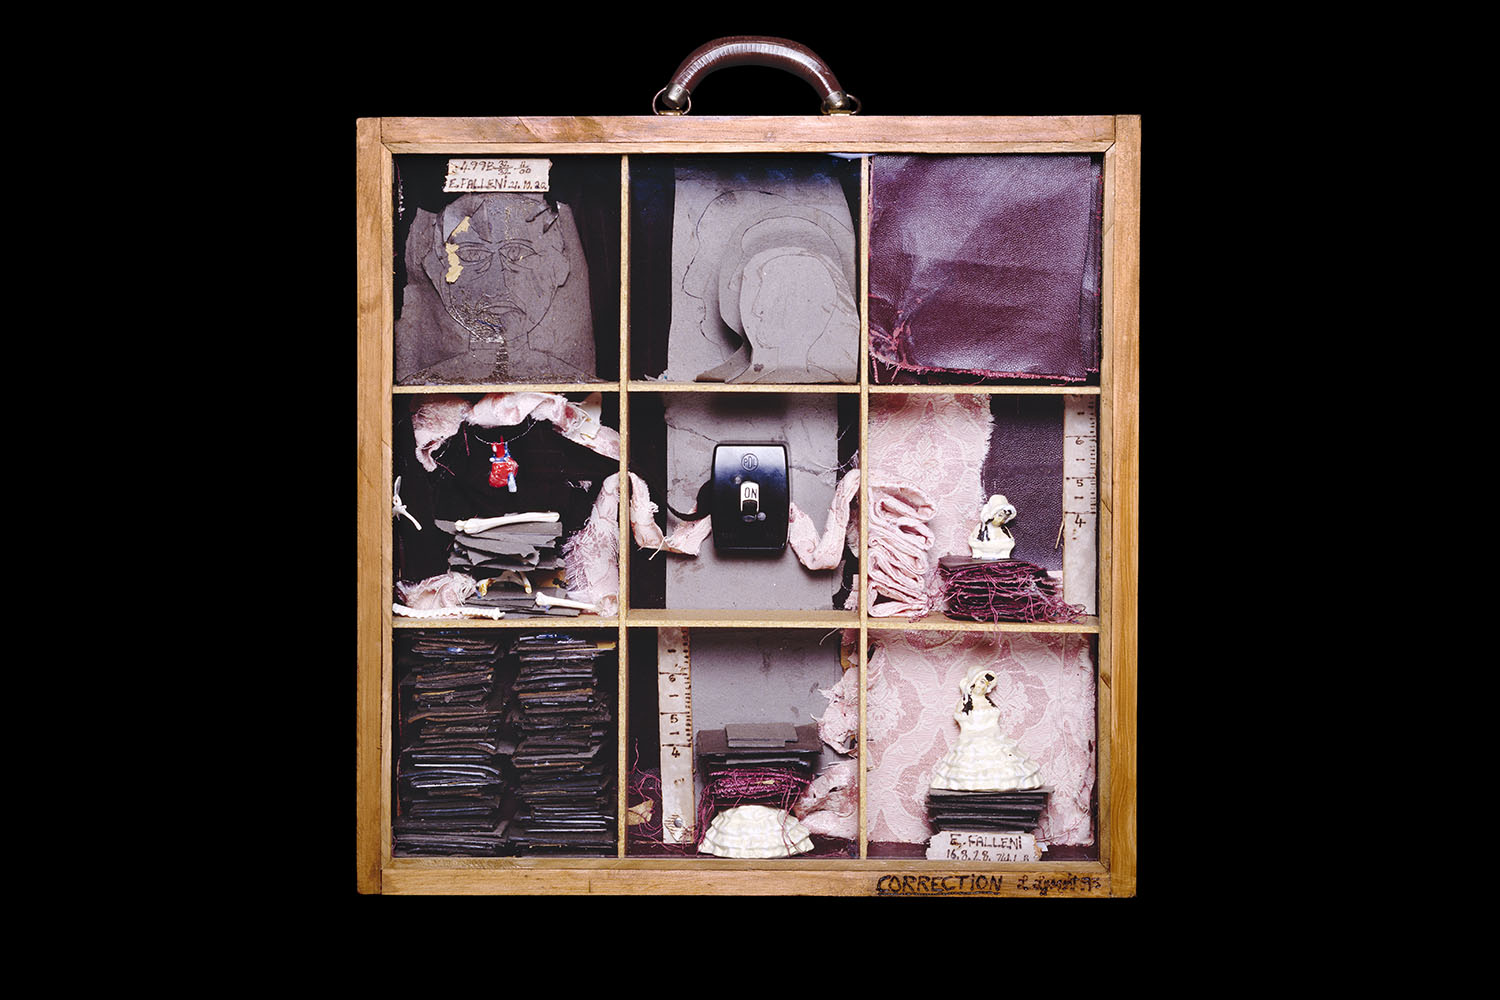 A frame resembling a suitcase divided into nine sections, containing a portrait, fabric swatches, a light switch, and various trinkets